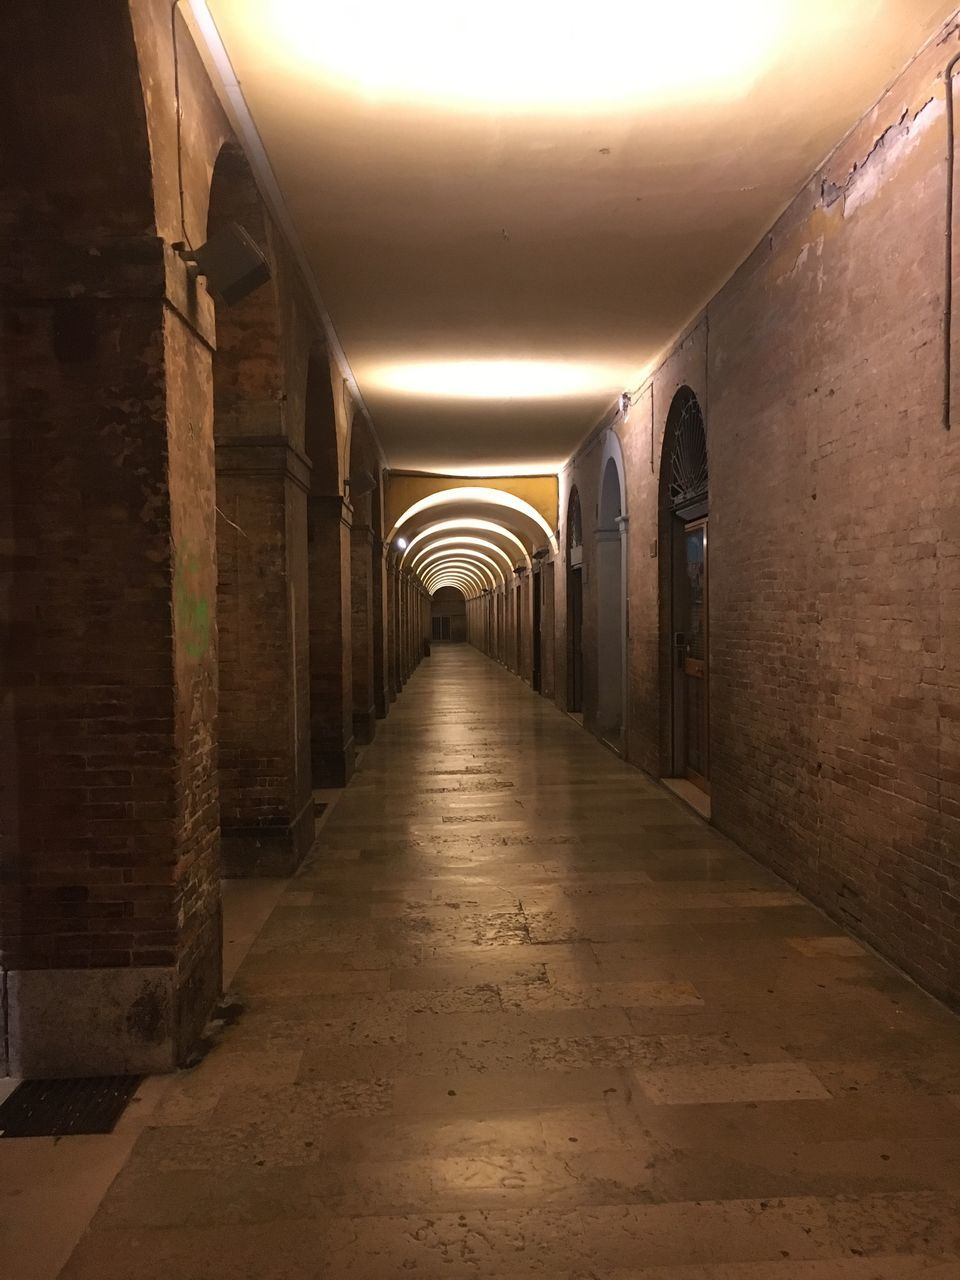 the way forward, corridor, illuminated, arch, indoors, diminishing perspective, ceiling, no people, architecture, built structure, day